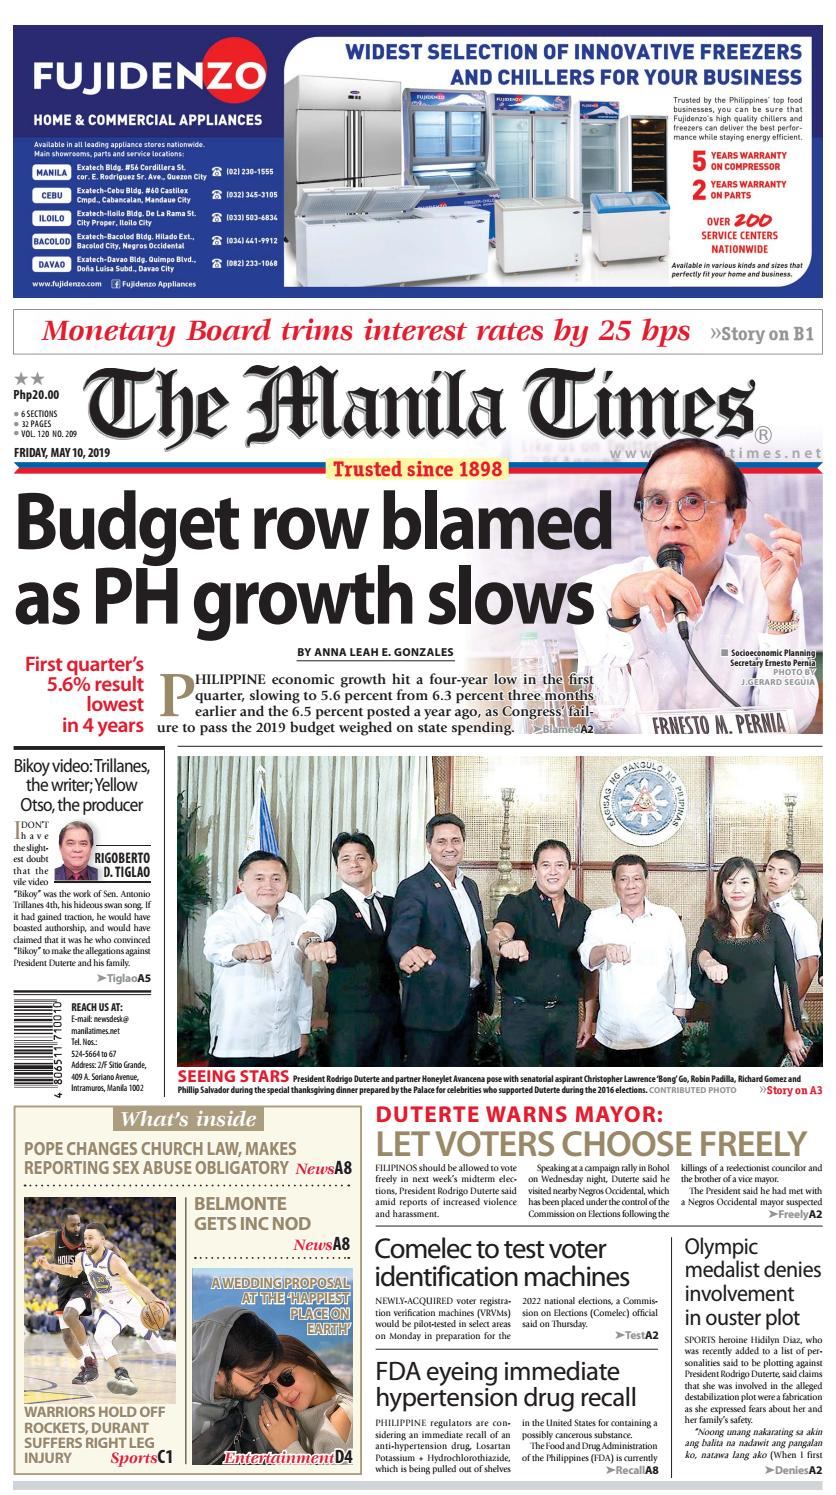 THE MANILA TIMES | MAY 10, 2019 by The Manila Times - issuu